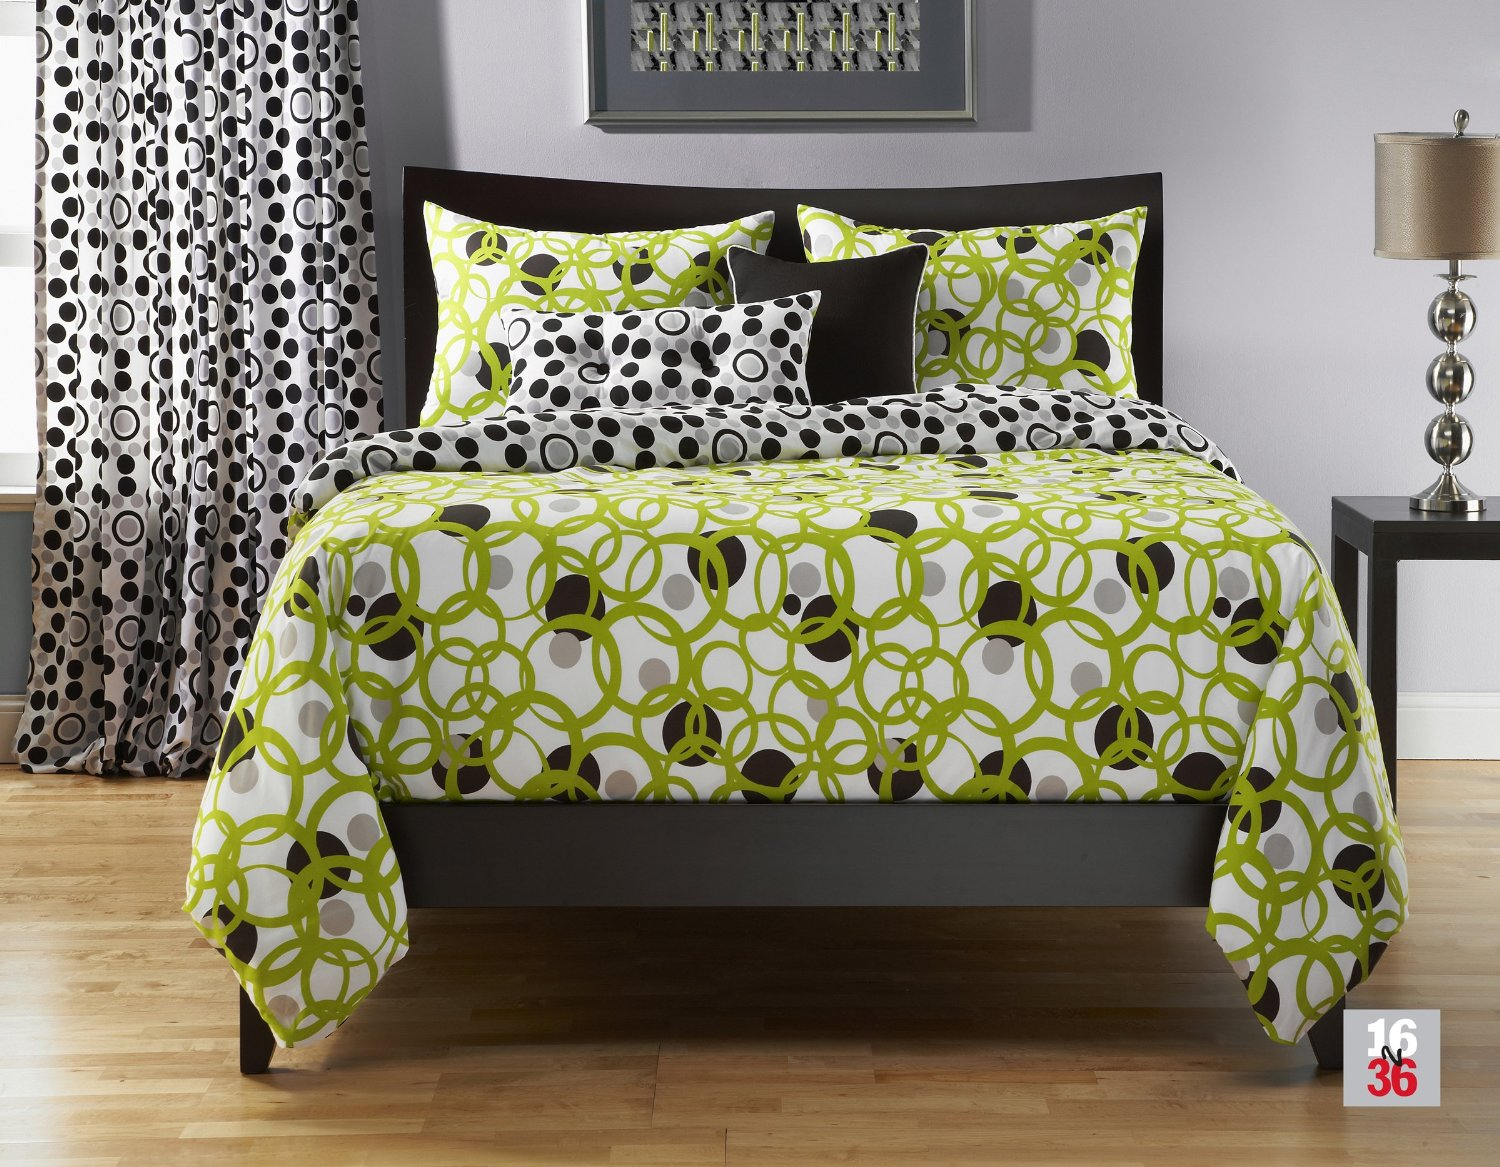 Green, white and black bedroom | Lime green bedrooms ...